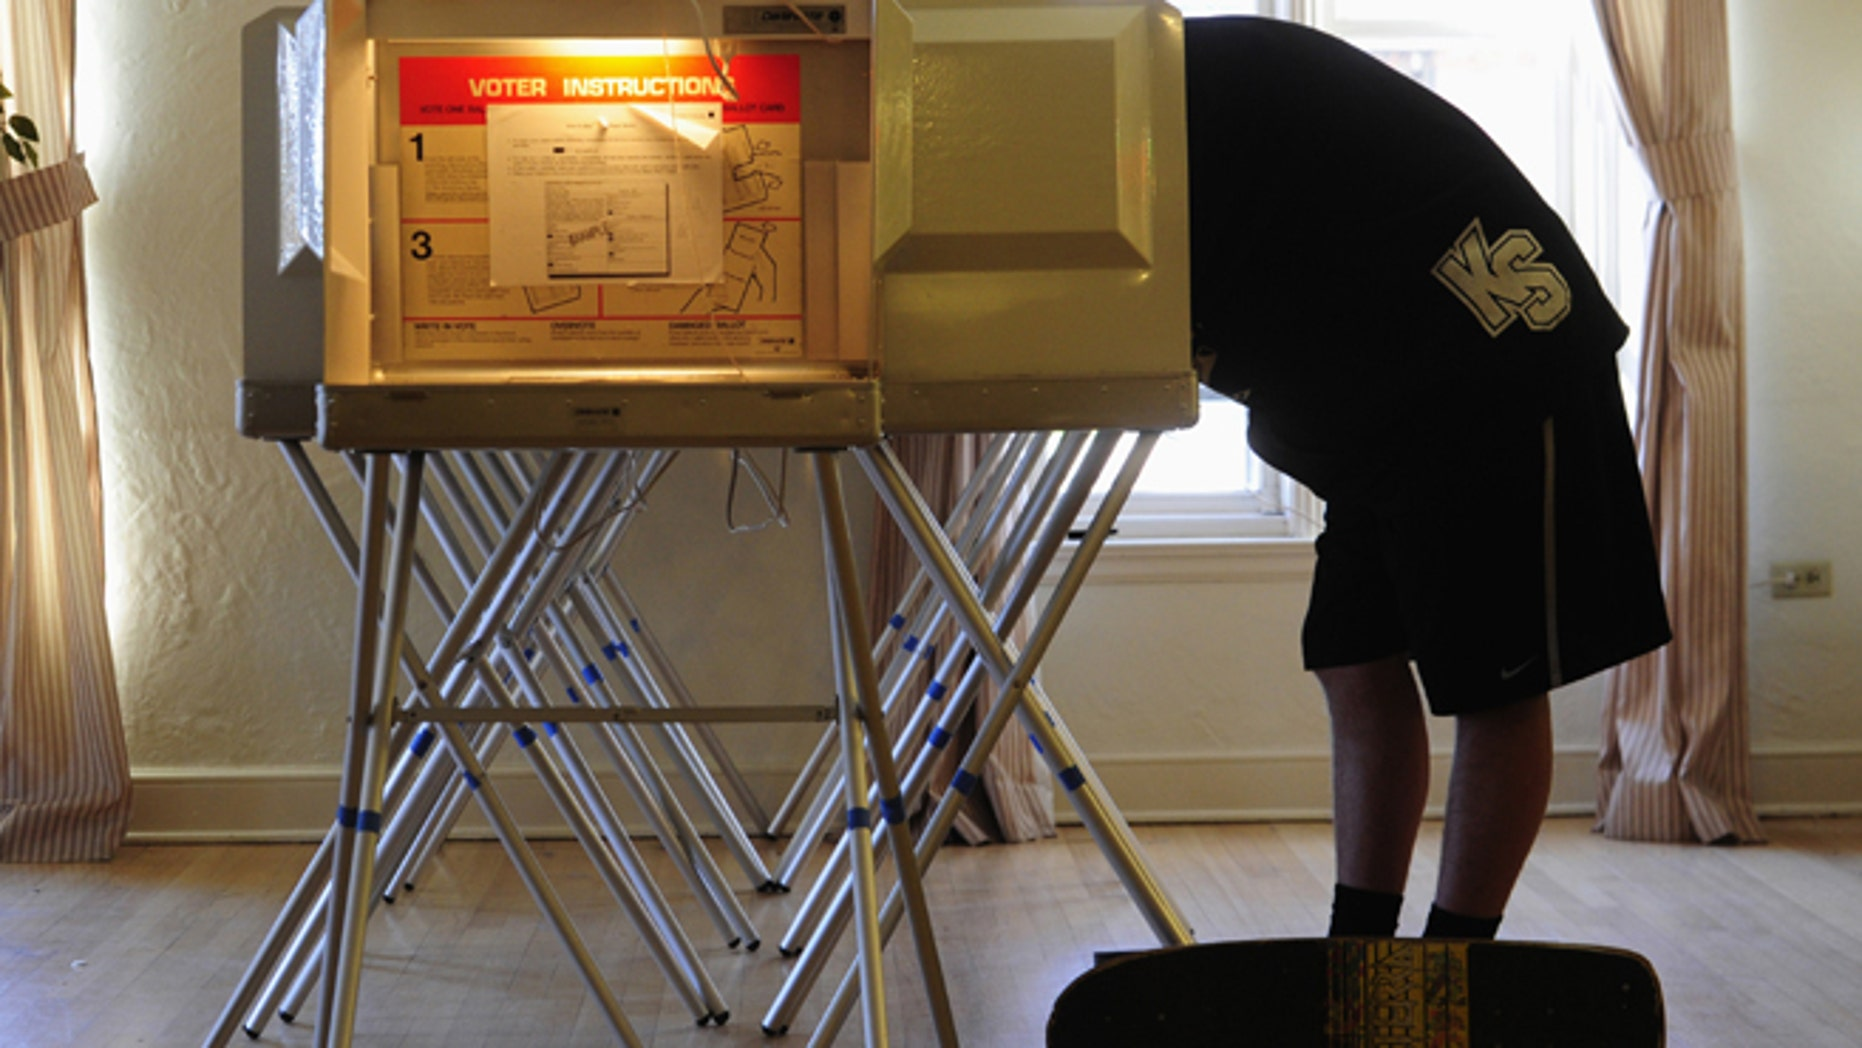 A college freshman leans into the voting booth while filling up his ballot. (REUTERS)